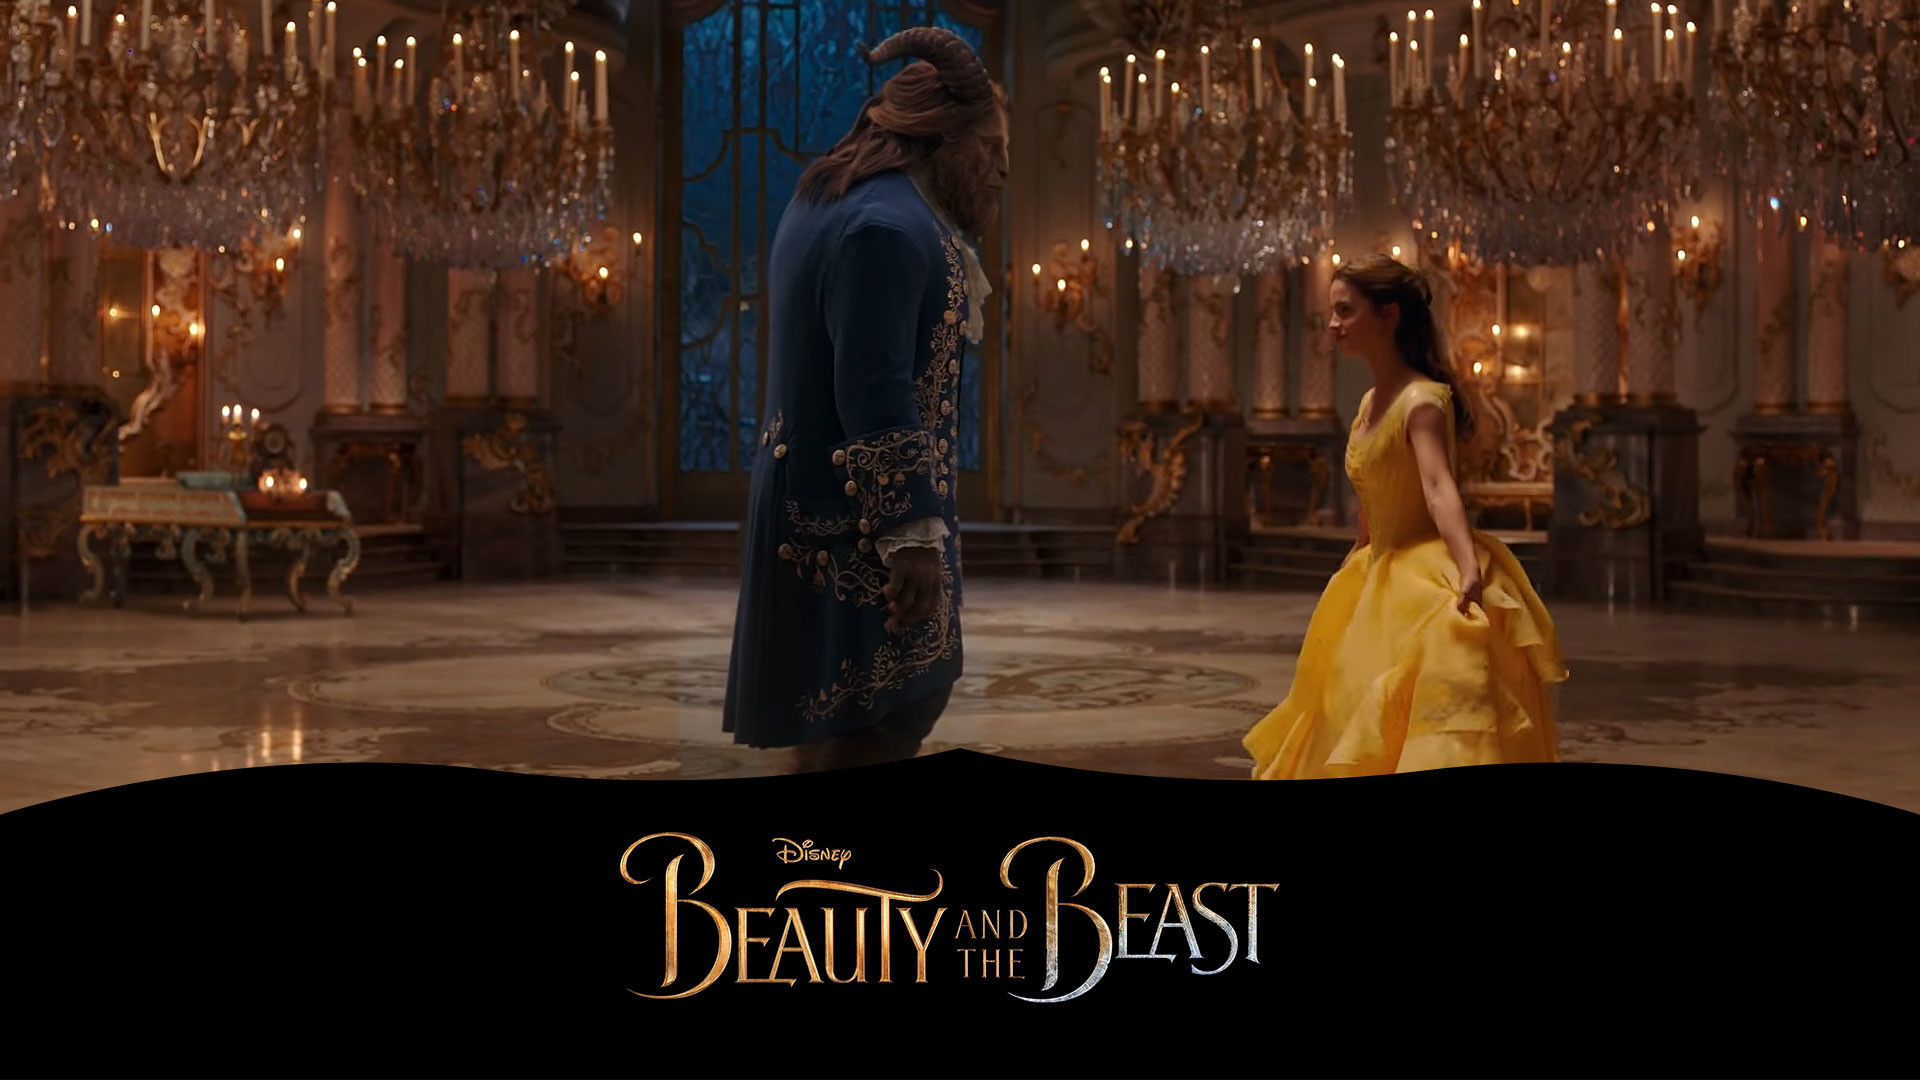 1920x1080 Beauty-and-the-Beast-Movie-Wallpaper-HD-2